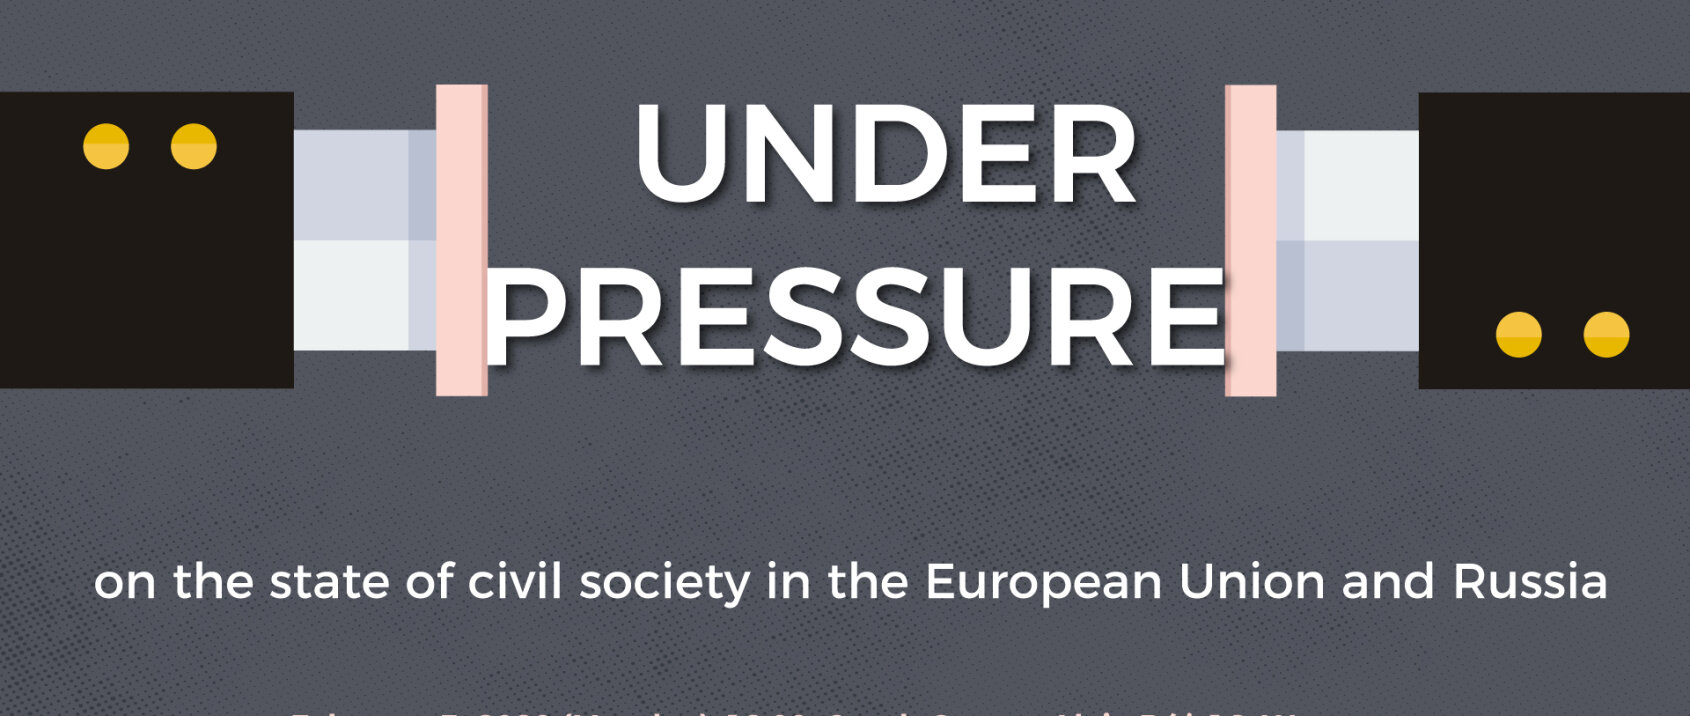 Video of the debate: The sector under pressure - on the state of civil society in the European Union and Russia